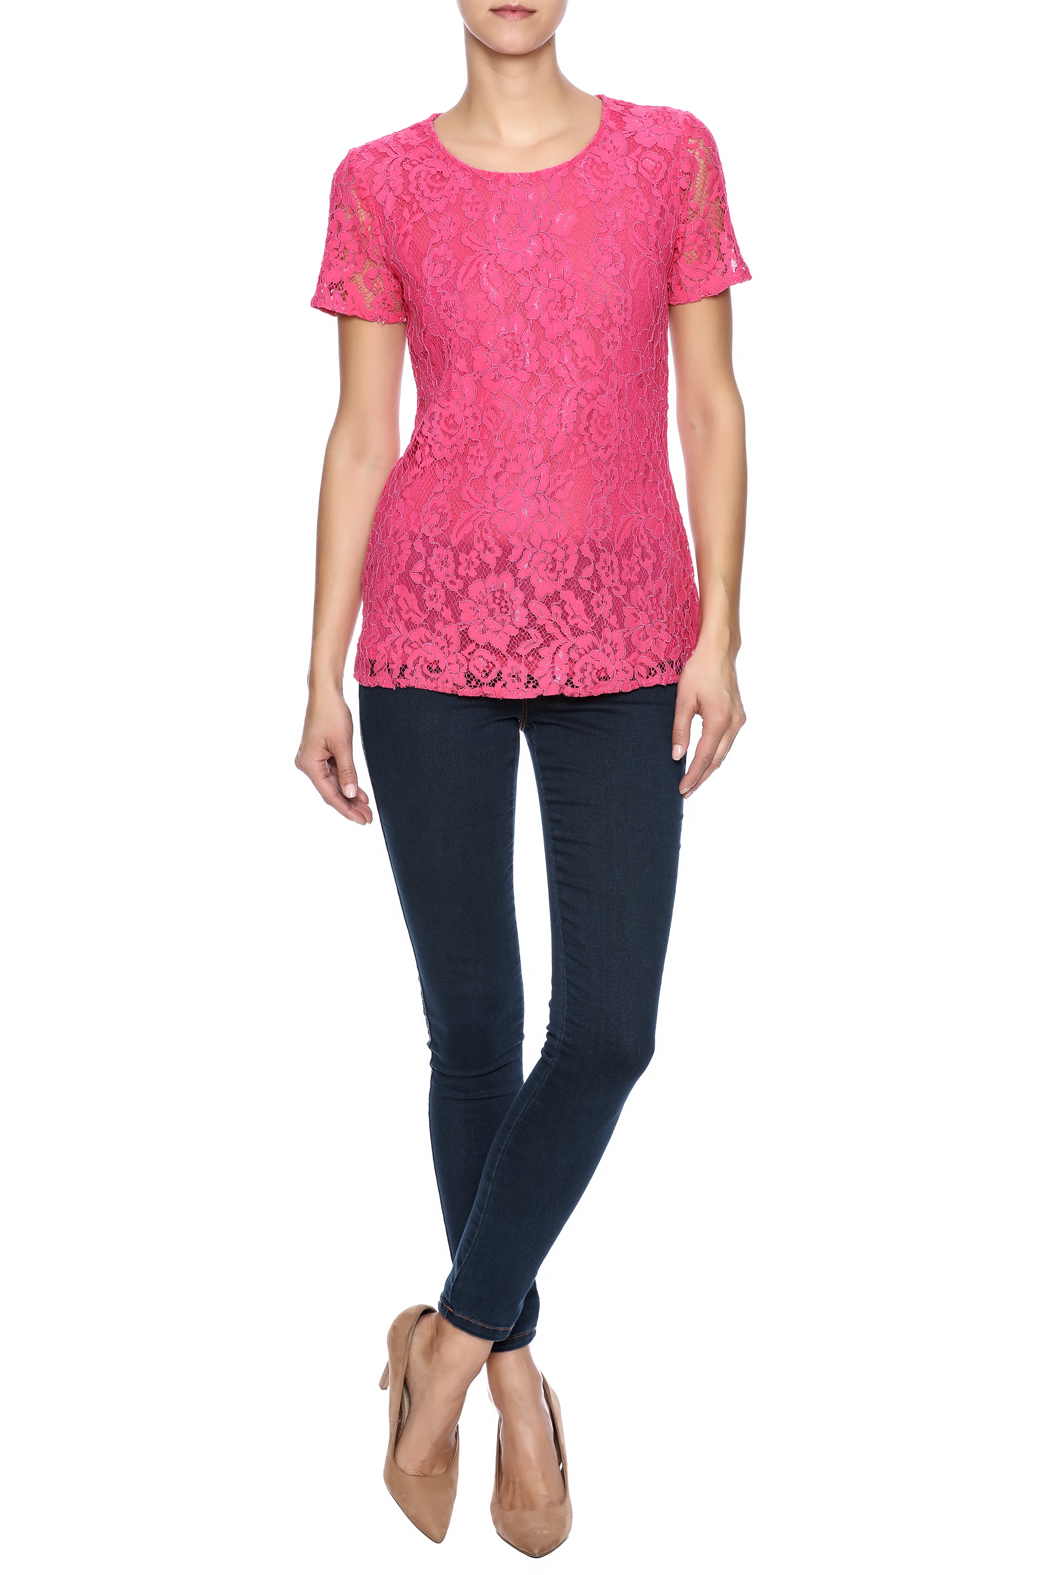 Betas Choice Pink Lace Top - Front Full Image